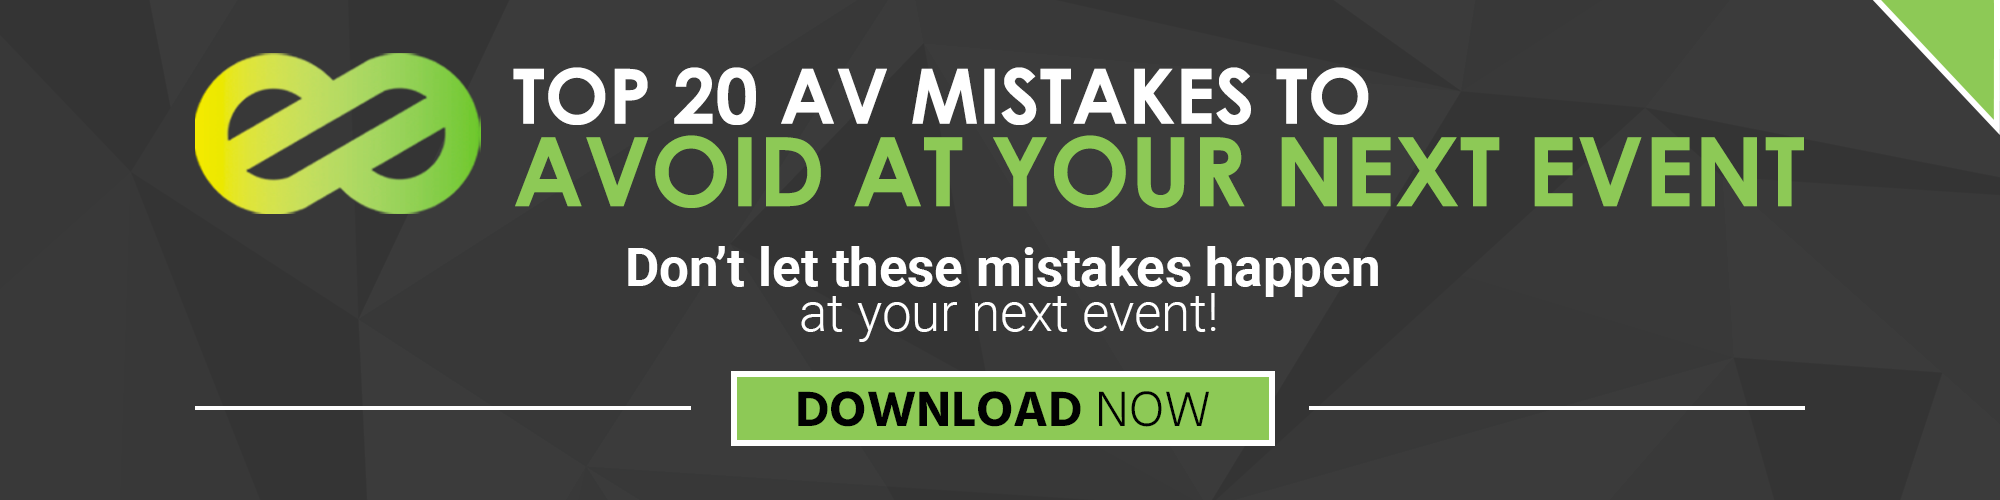 av mistakes to avoid